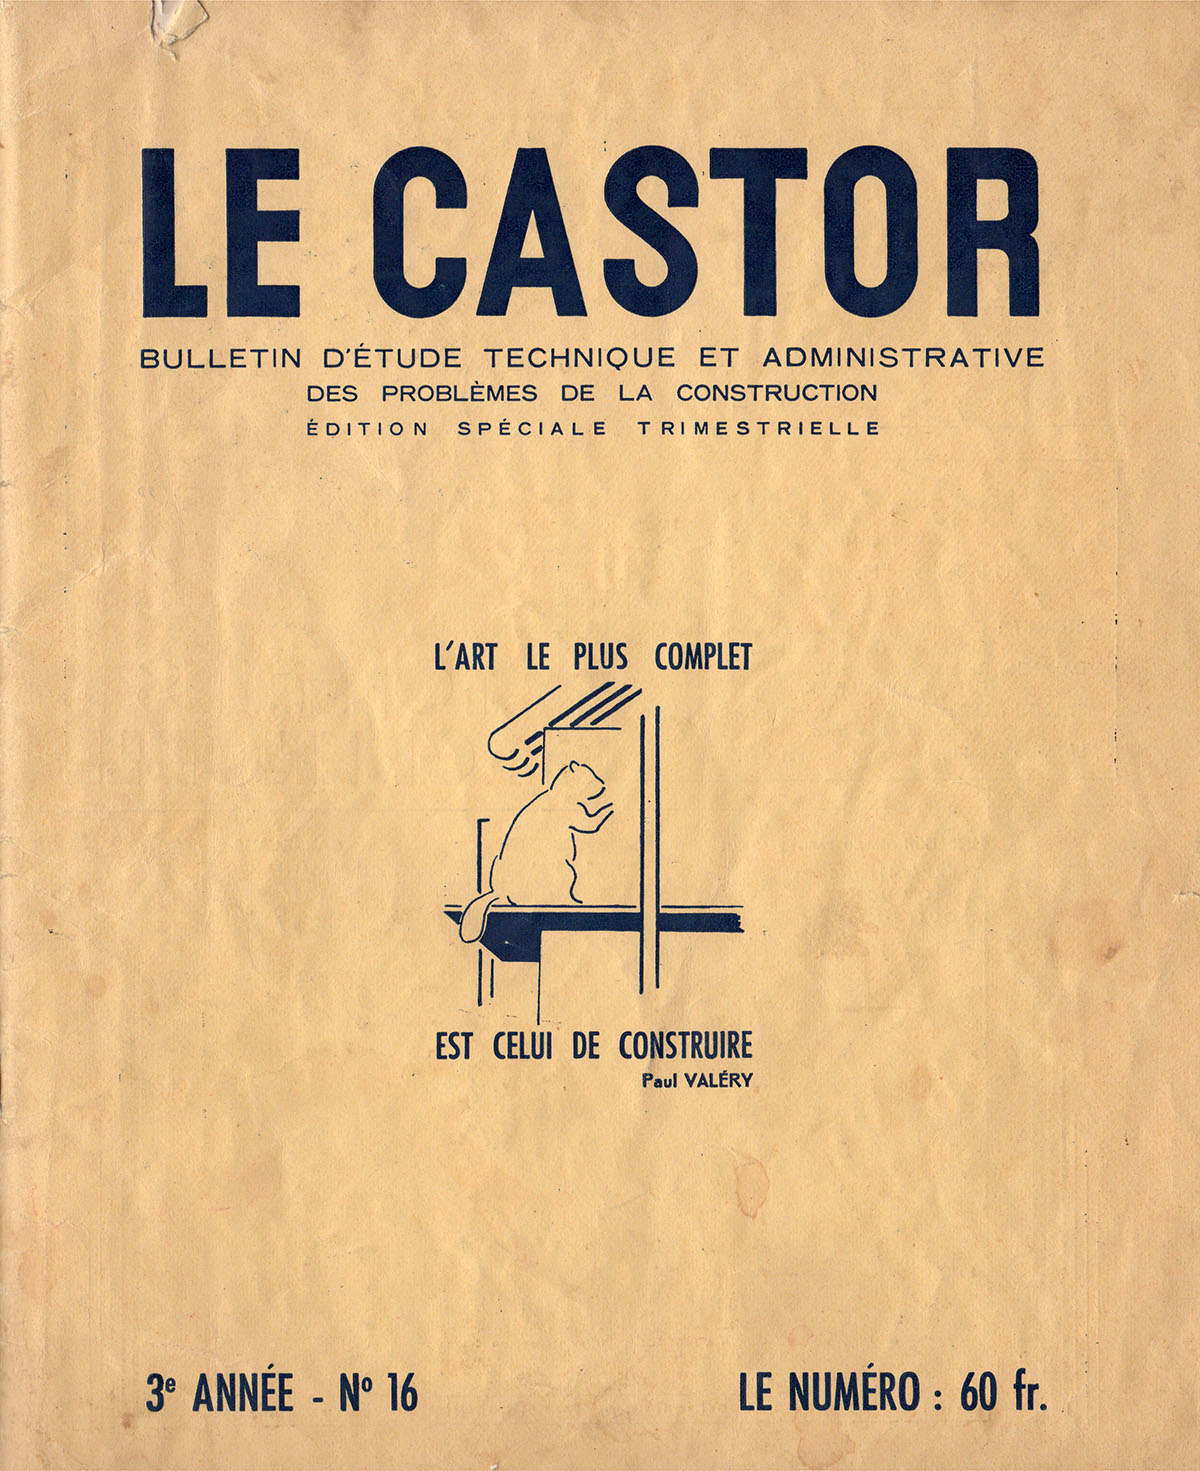 Les Castors - L'aventure associative de l'autoconstruction